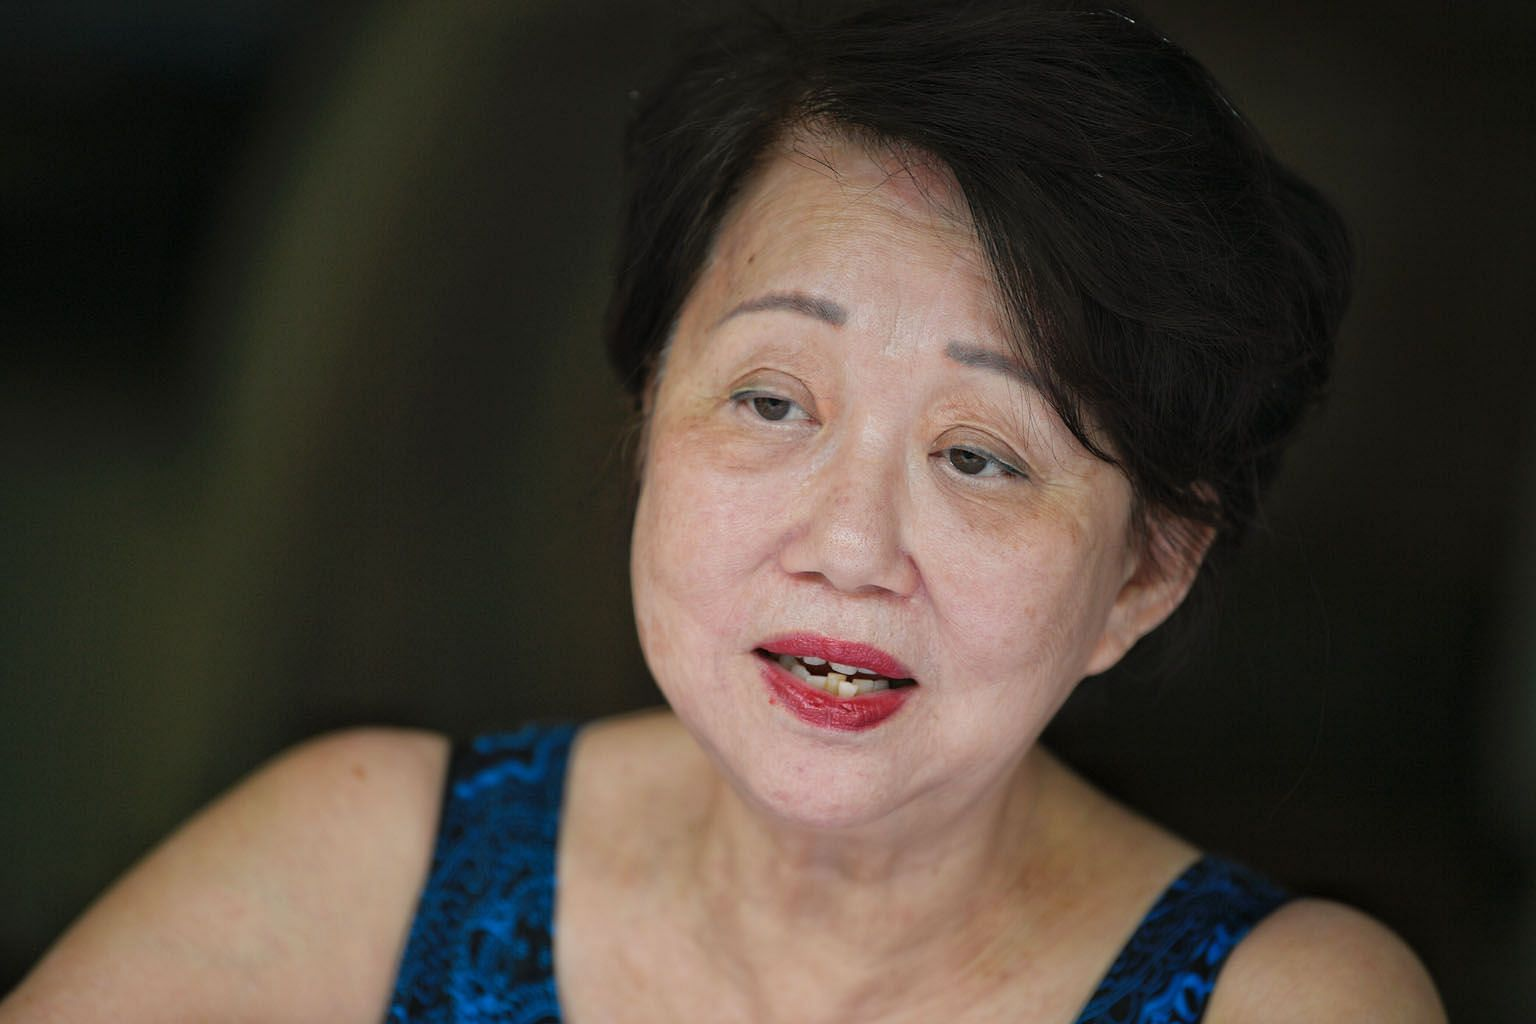 Jannie Chan's debt to SME Care stems from a 2012 personal guarantee she gave.